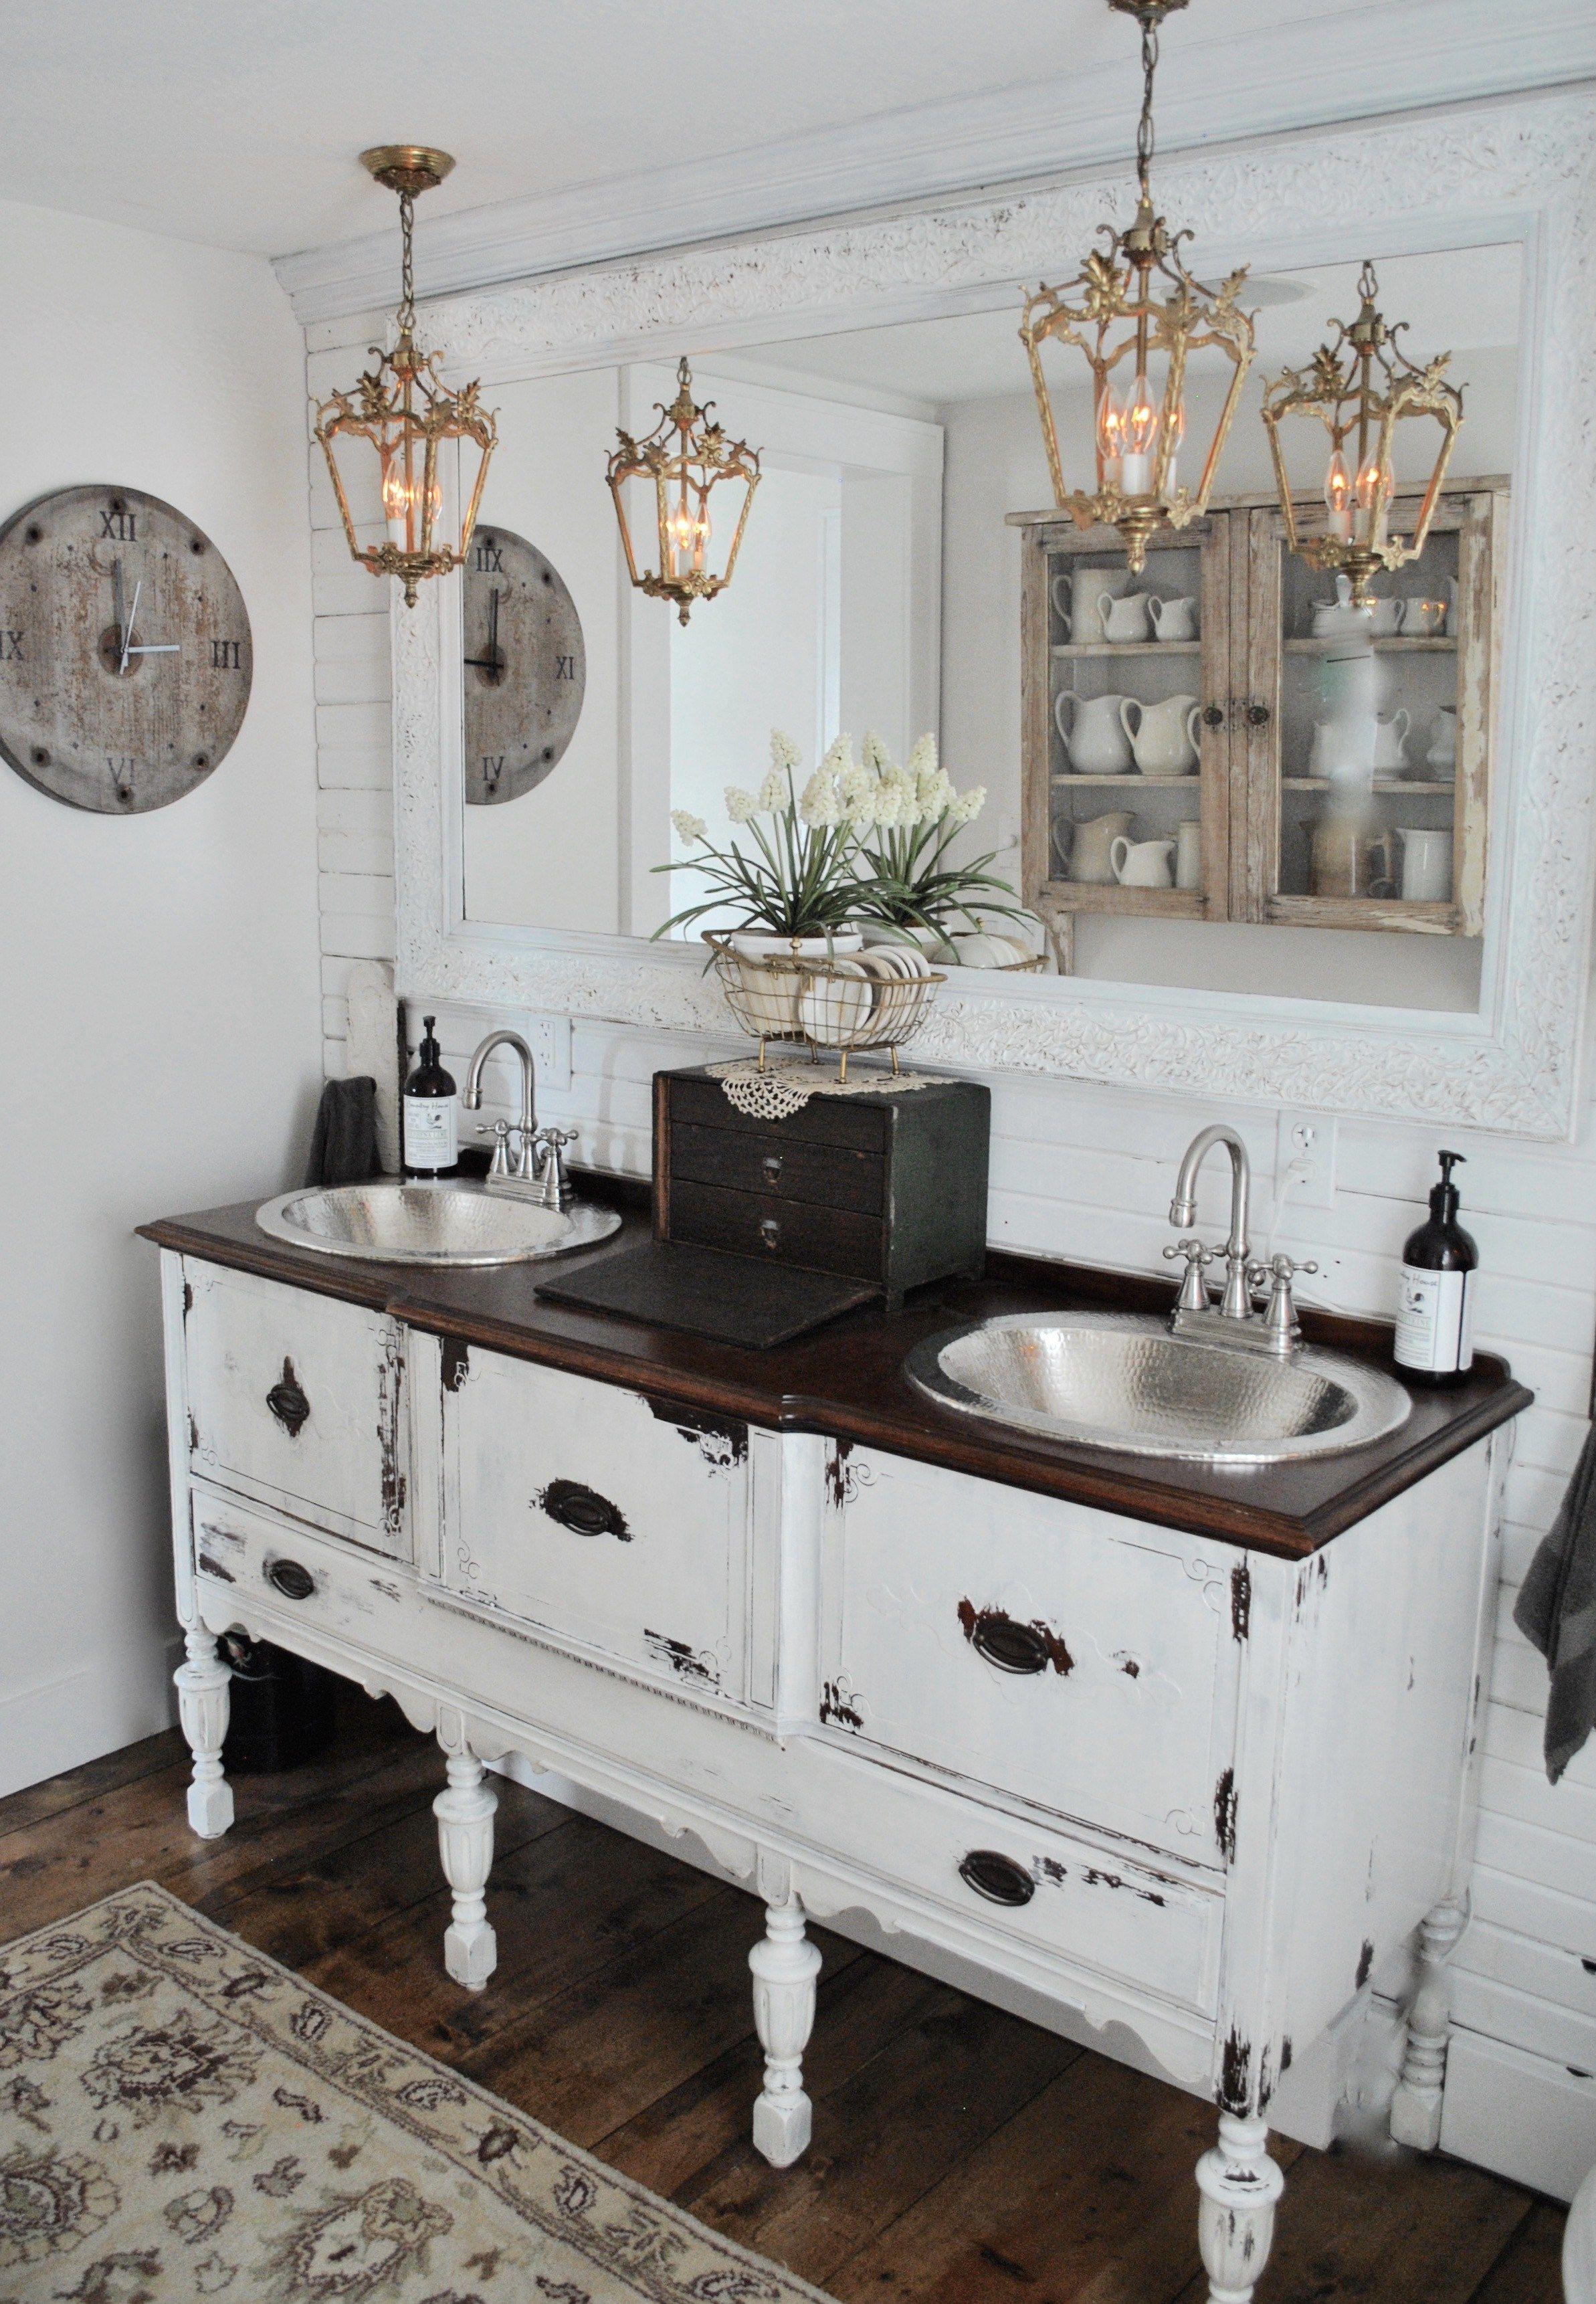 Bathroom reveal day which we accomplished turning an antique buffet